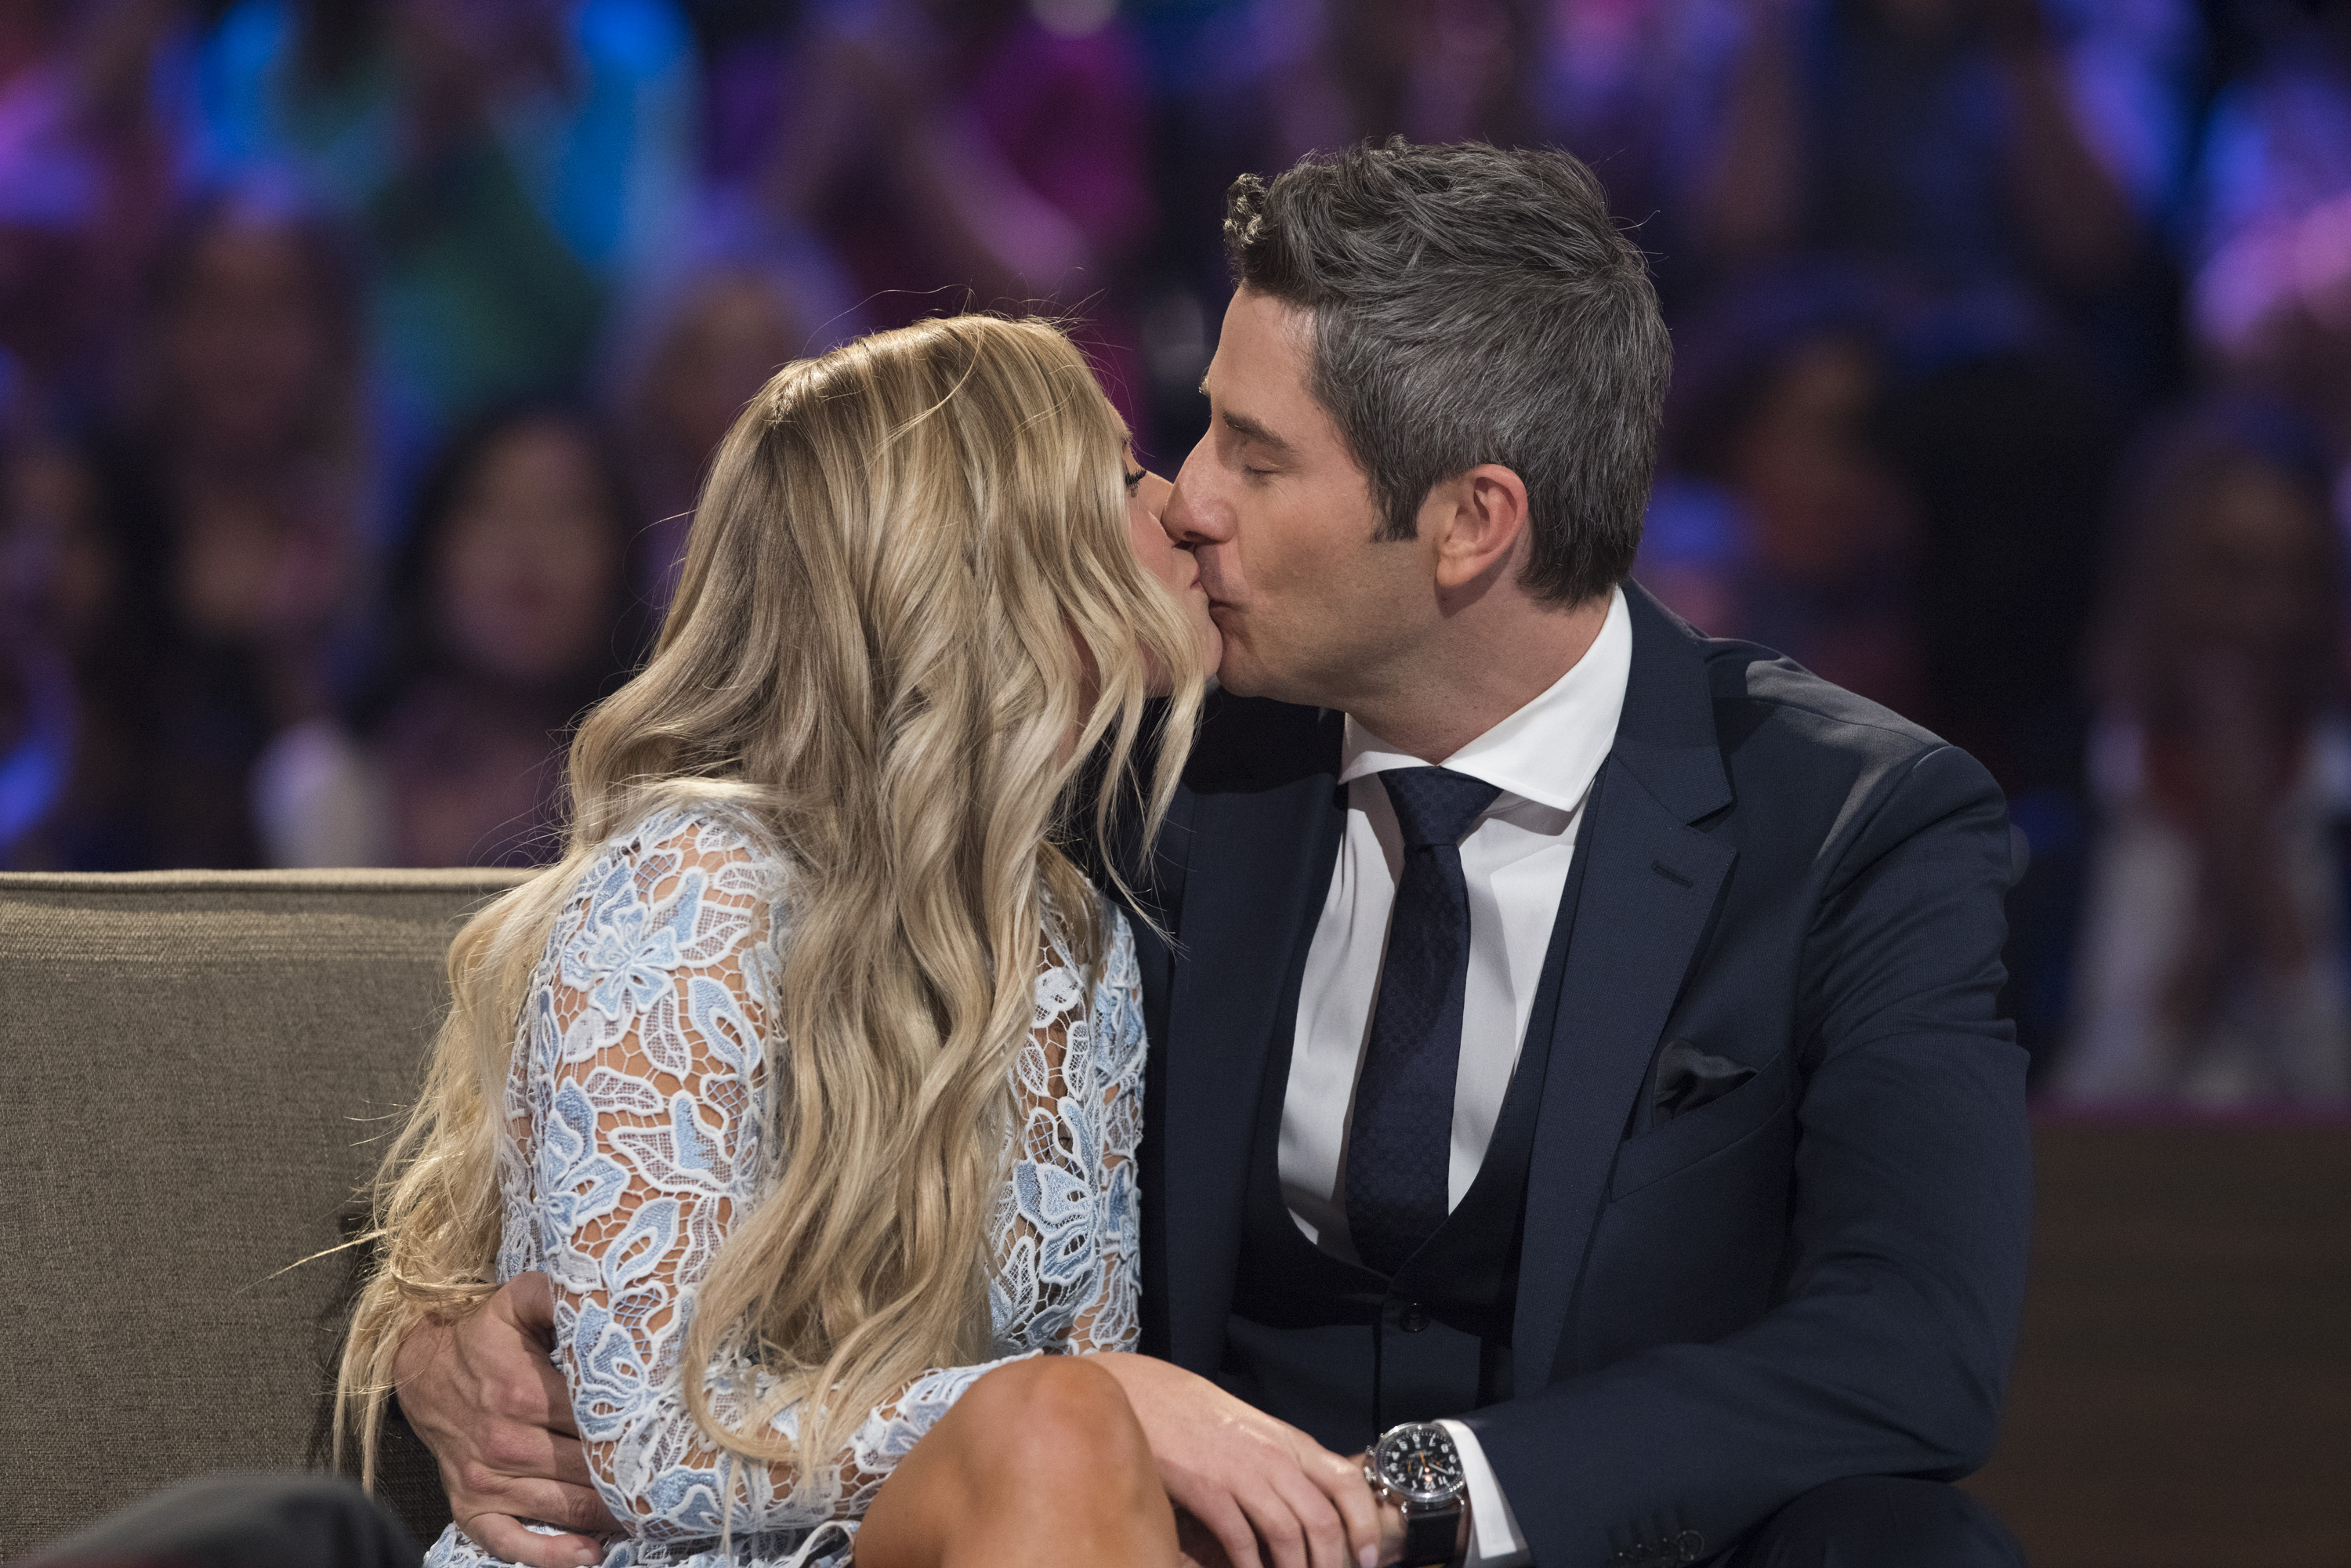 The-Bachelors-Arie-Luyendyk-Jr.-Gets-Engaged-To-Lauren-B.-In-Explosive-Finale-After-Split-From-Becca-K